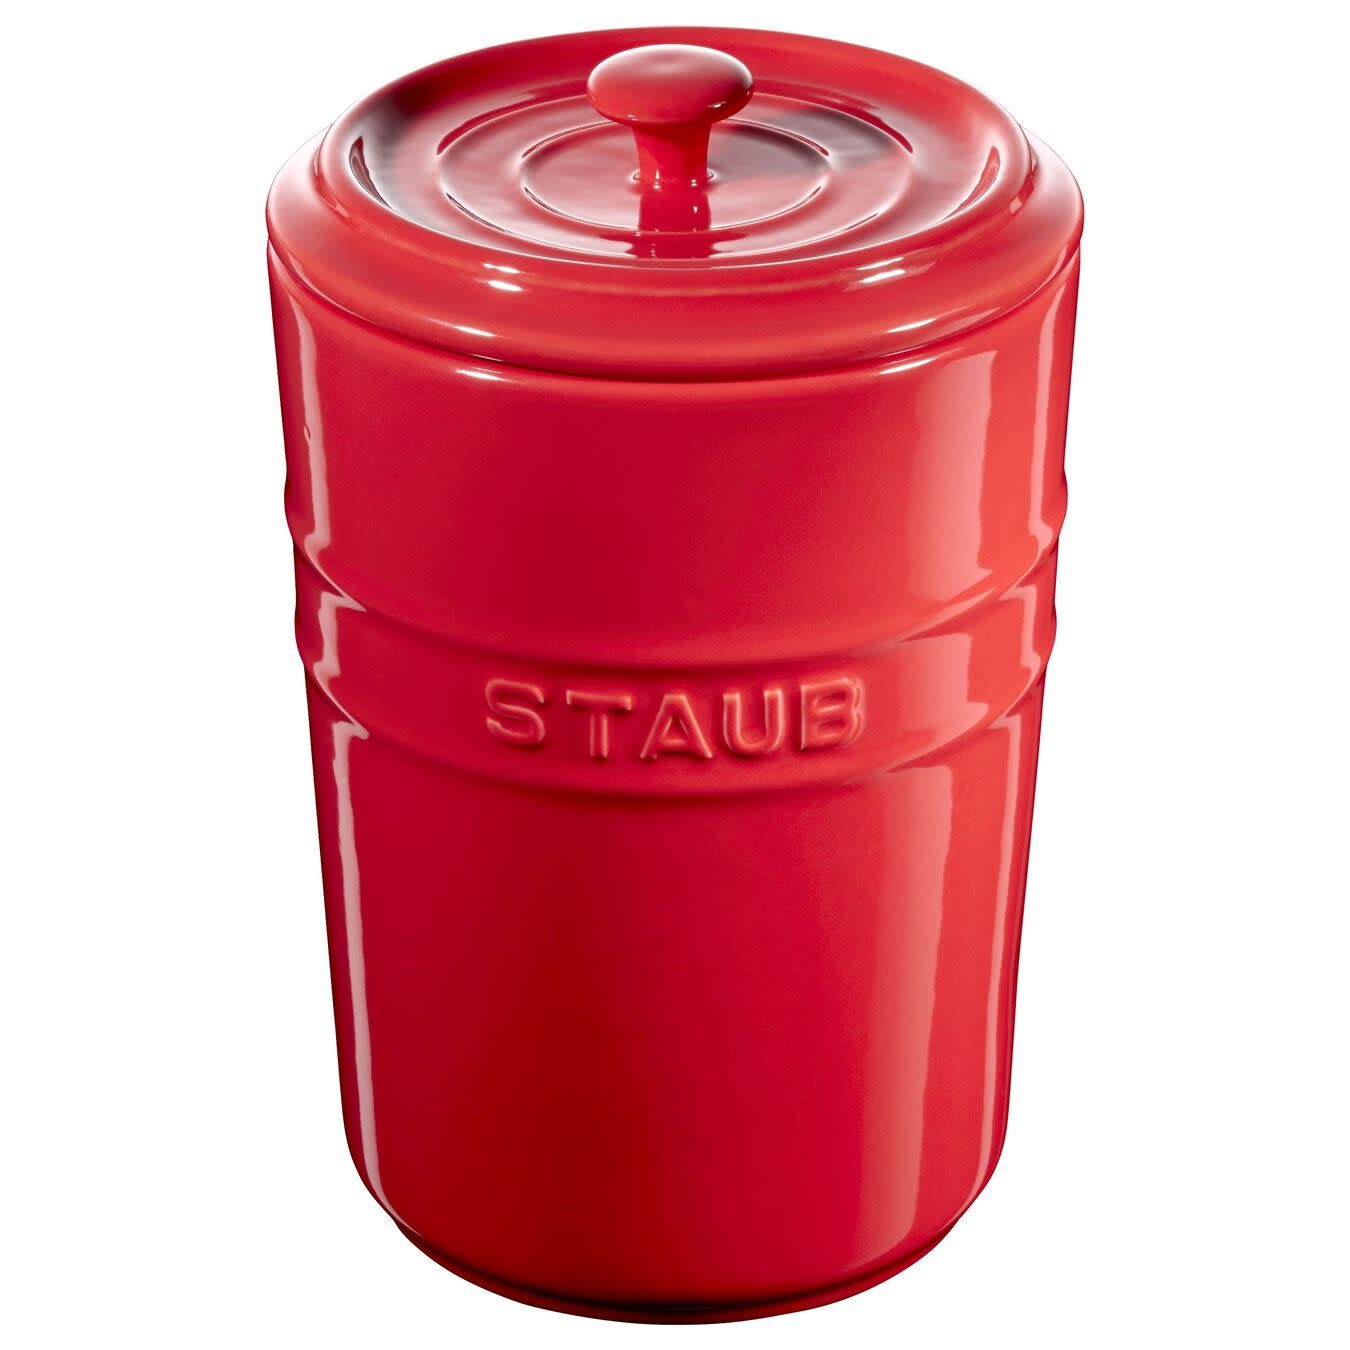 Staub Storage Pot 1.0L Cherry